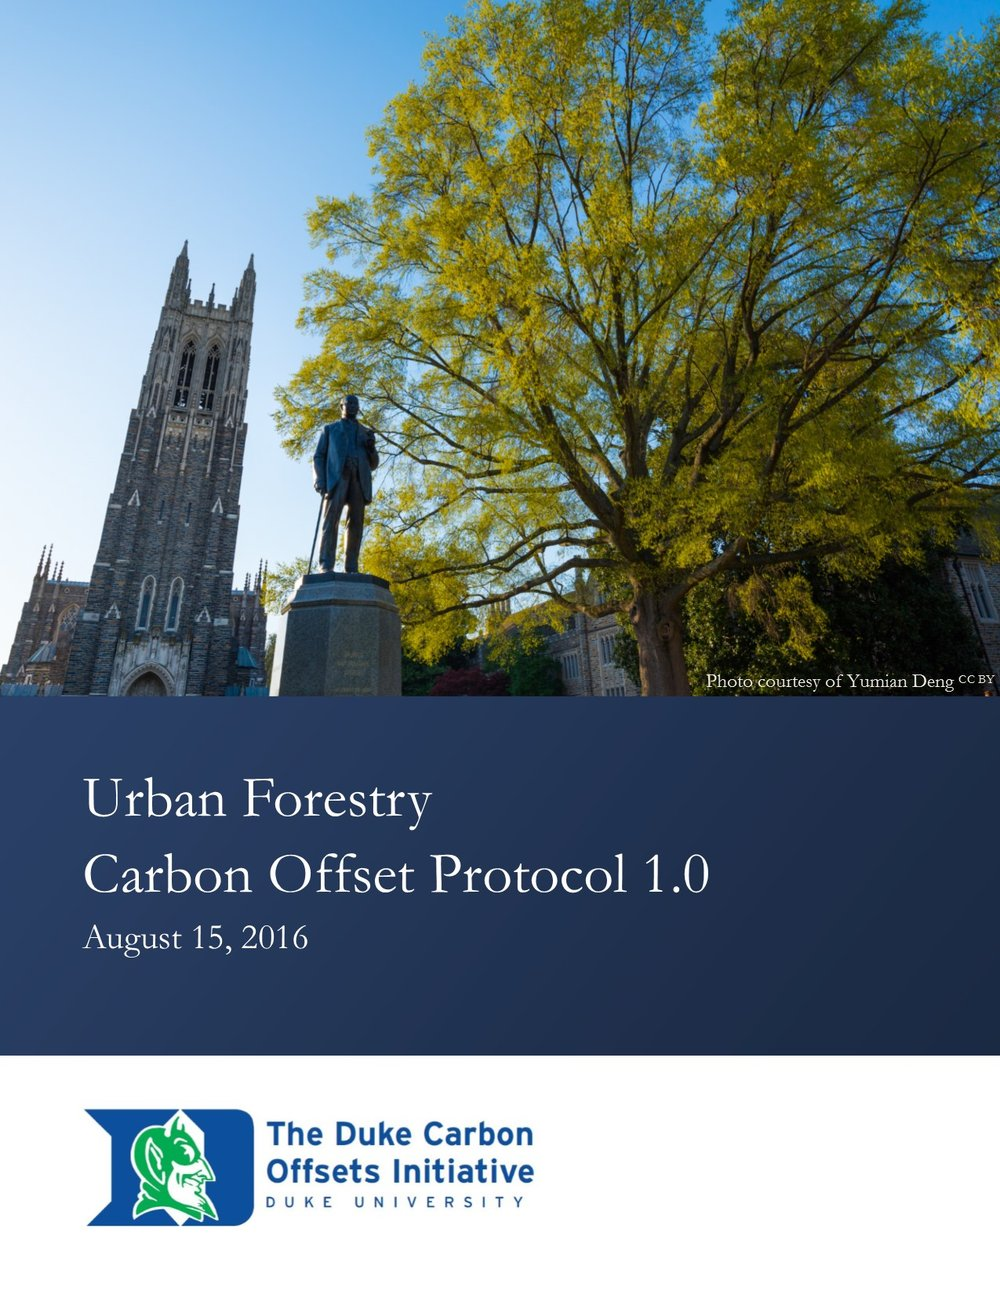 Urban Forestry Protocol